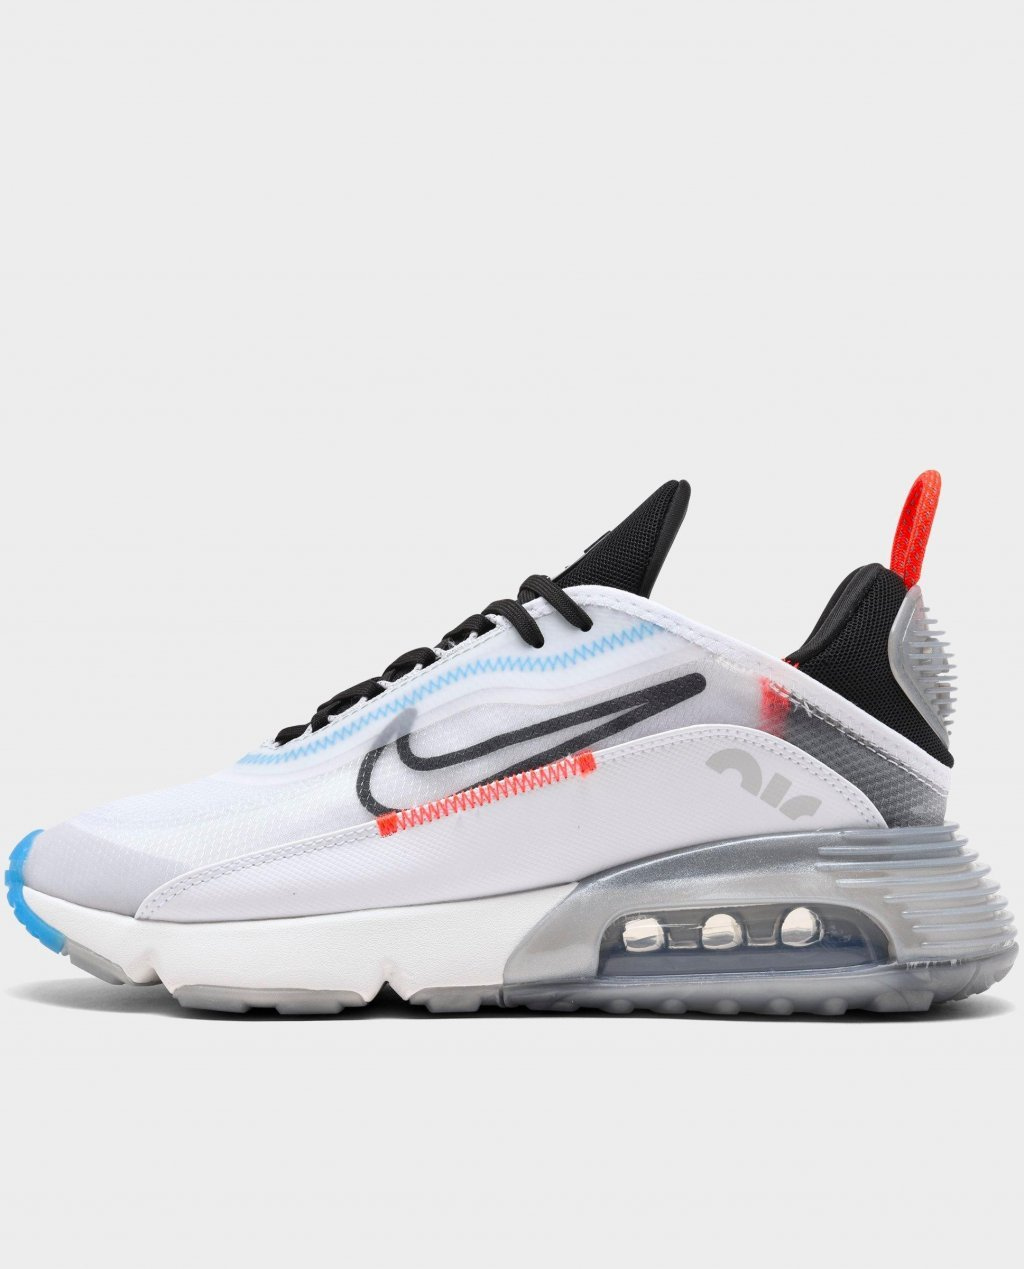 Nike Air Max 2090 Casual Shoes